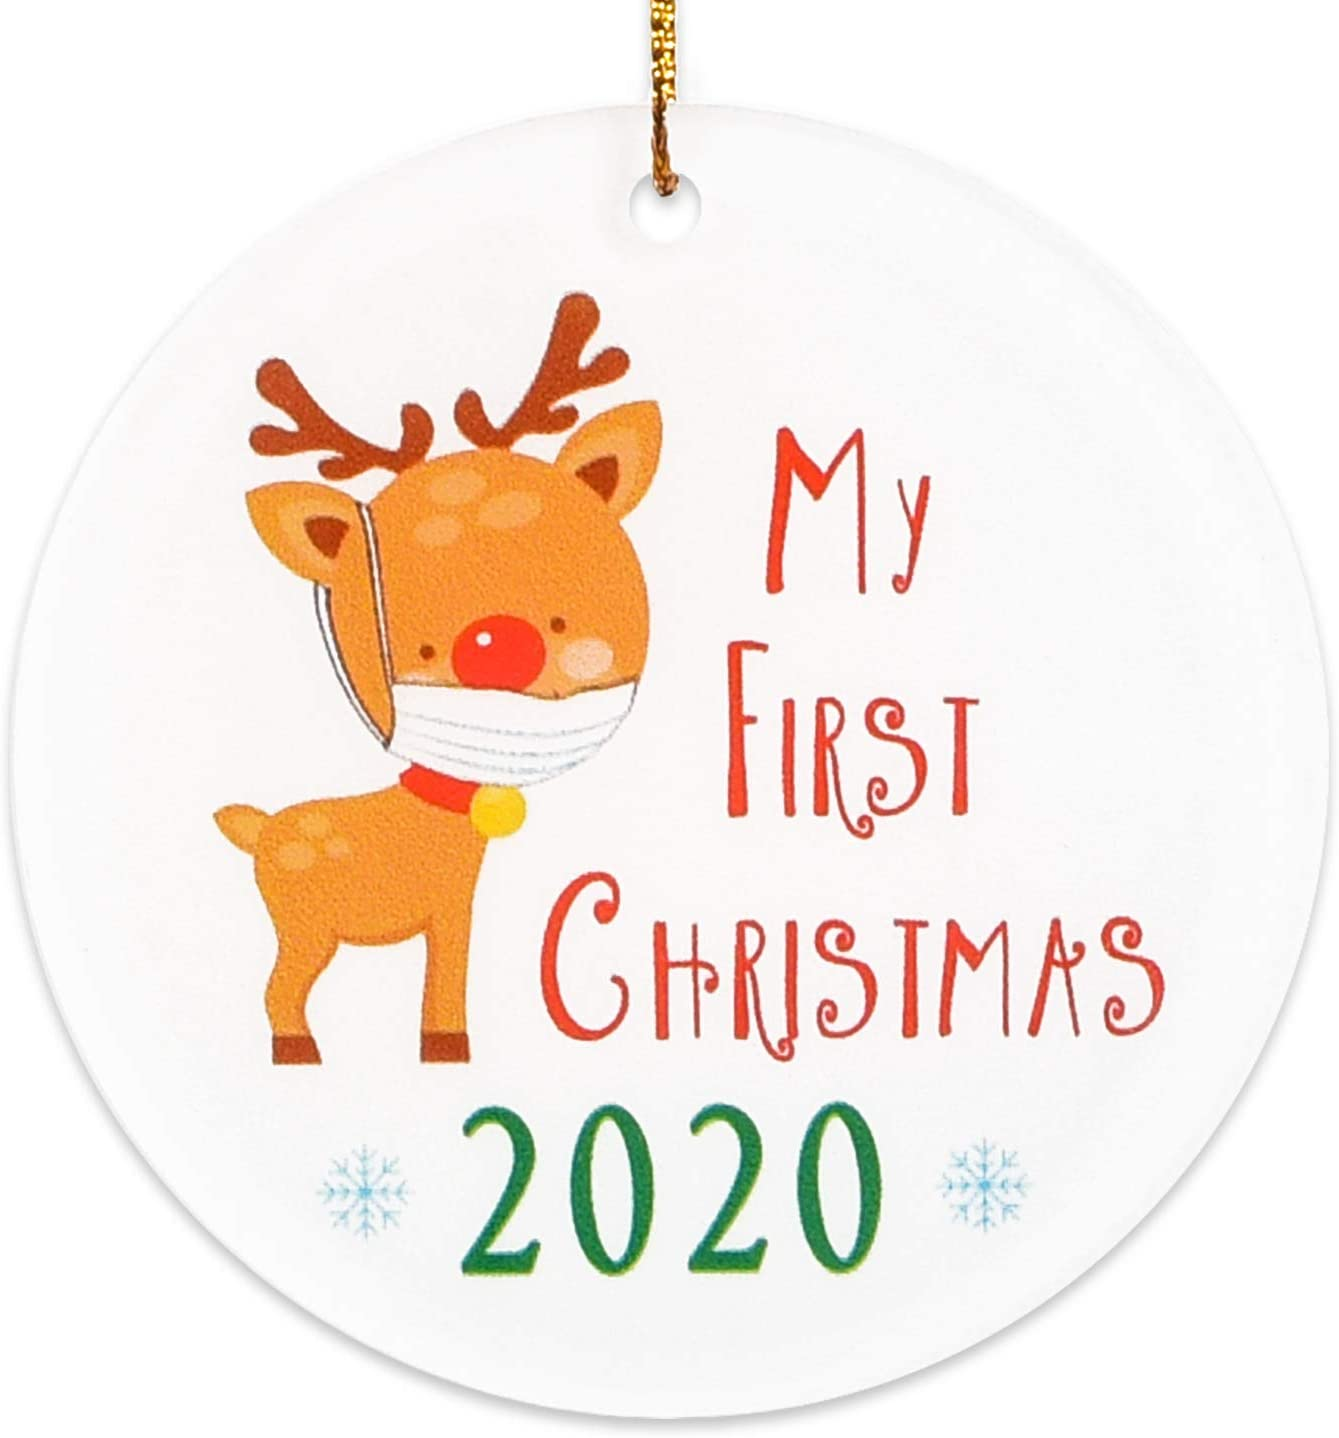 2020 Christmas Ornaments | My First Christmas | Reindeer with Mask Baby 1st Xmas Ornament New Parents Mom Dad Presents | Ceramic Holiday Decoration for Boy Girl